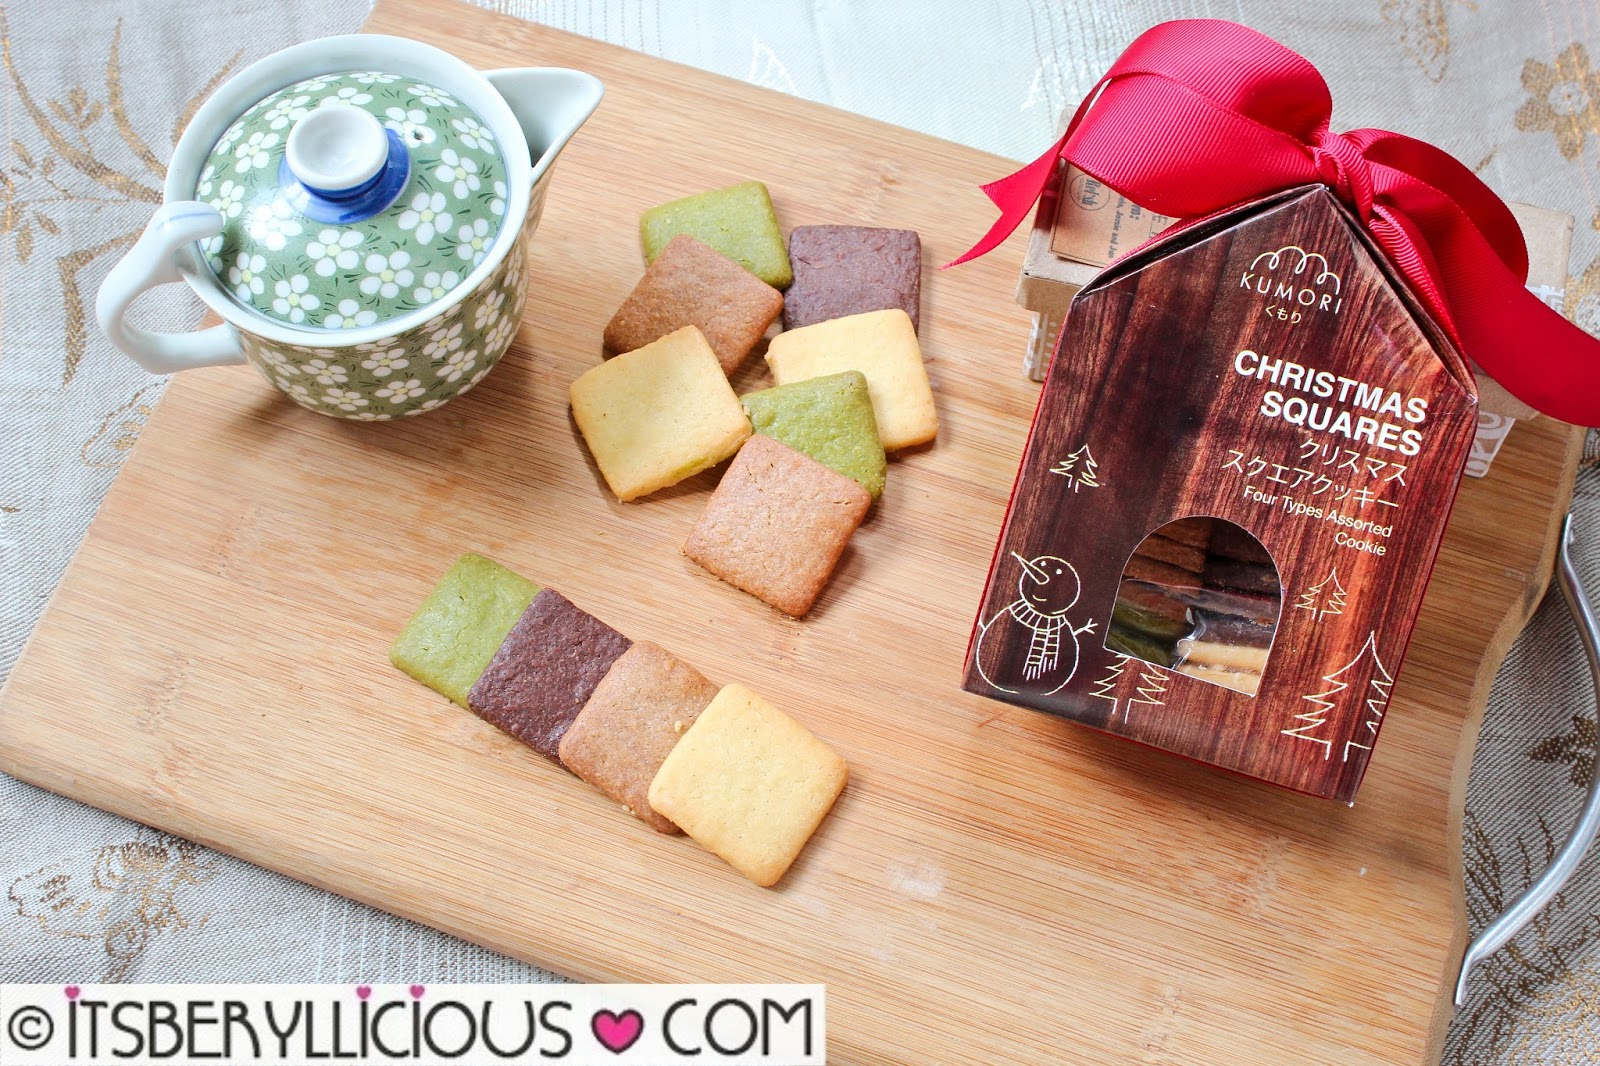 Kumori Japanese Bakery- Christmas Squares as Gifts for the Holiday ...